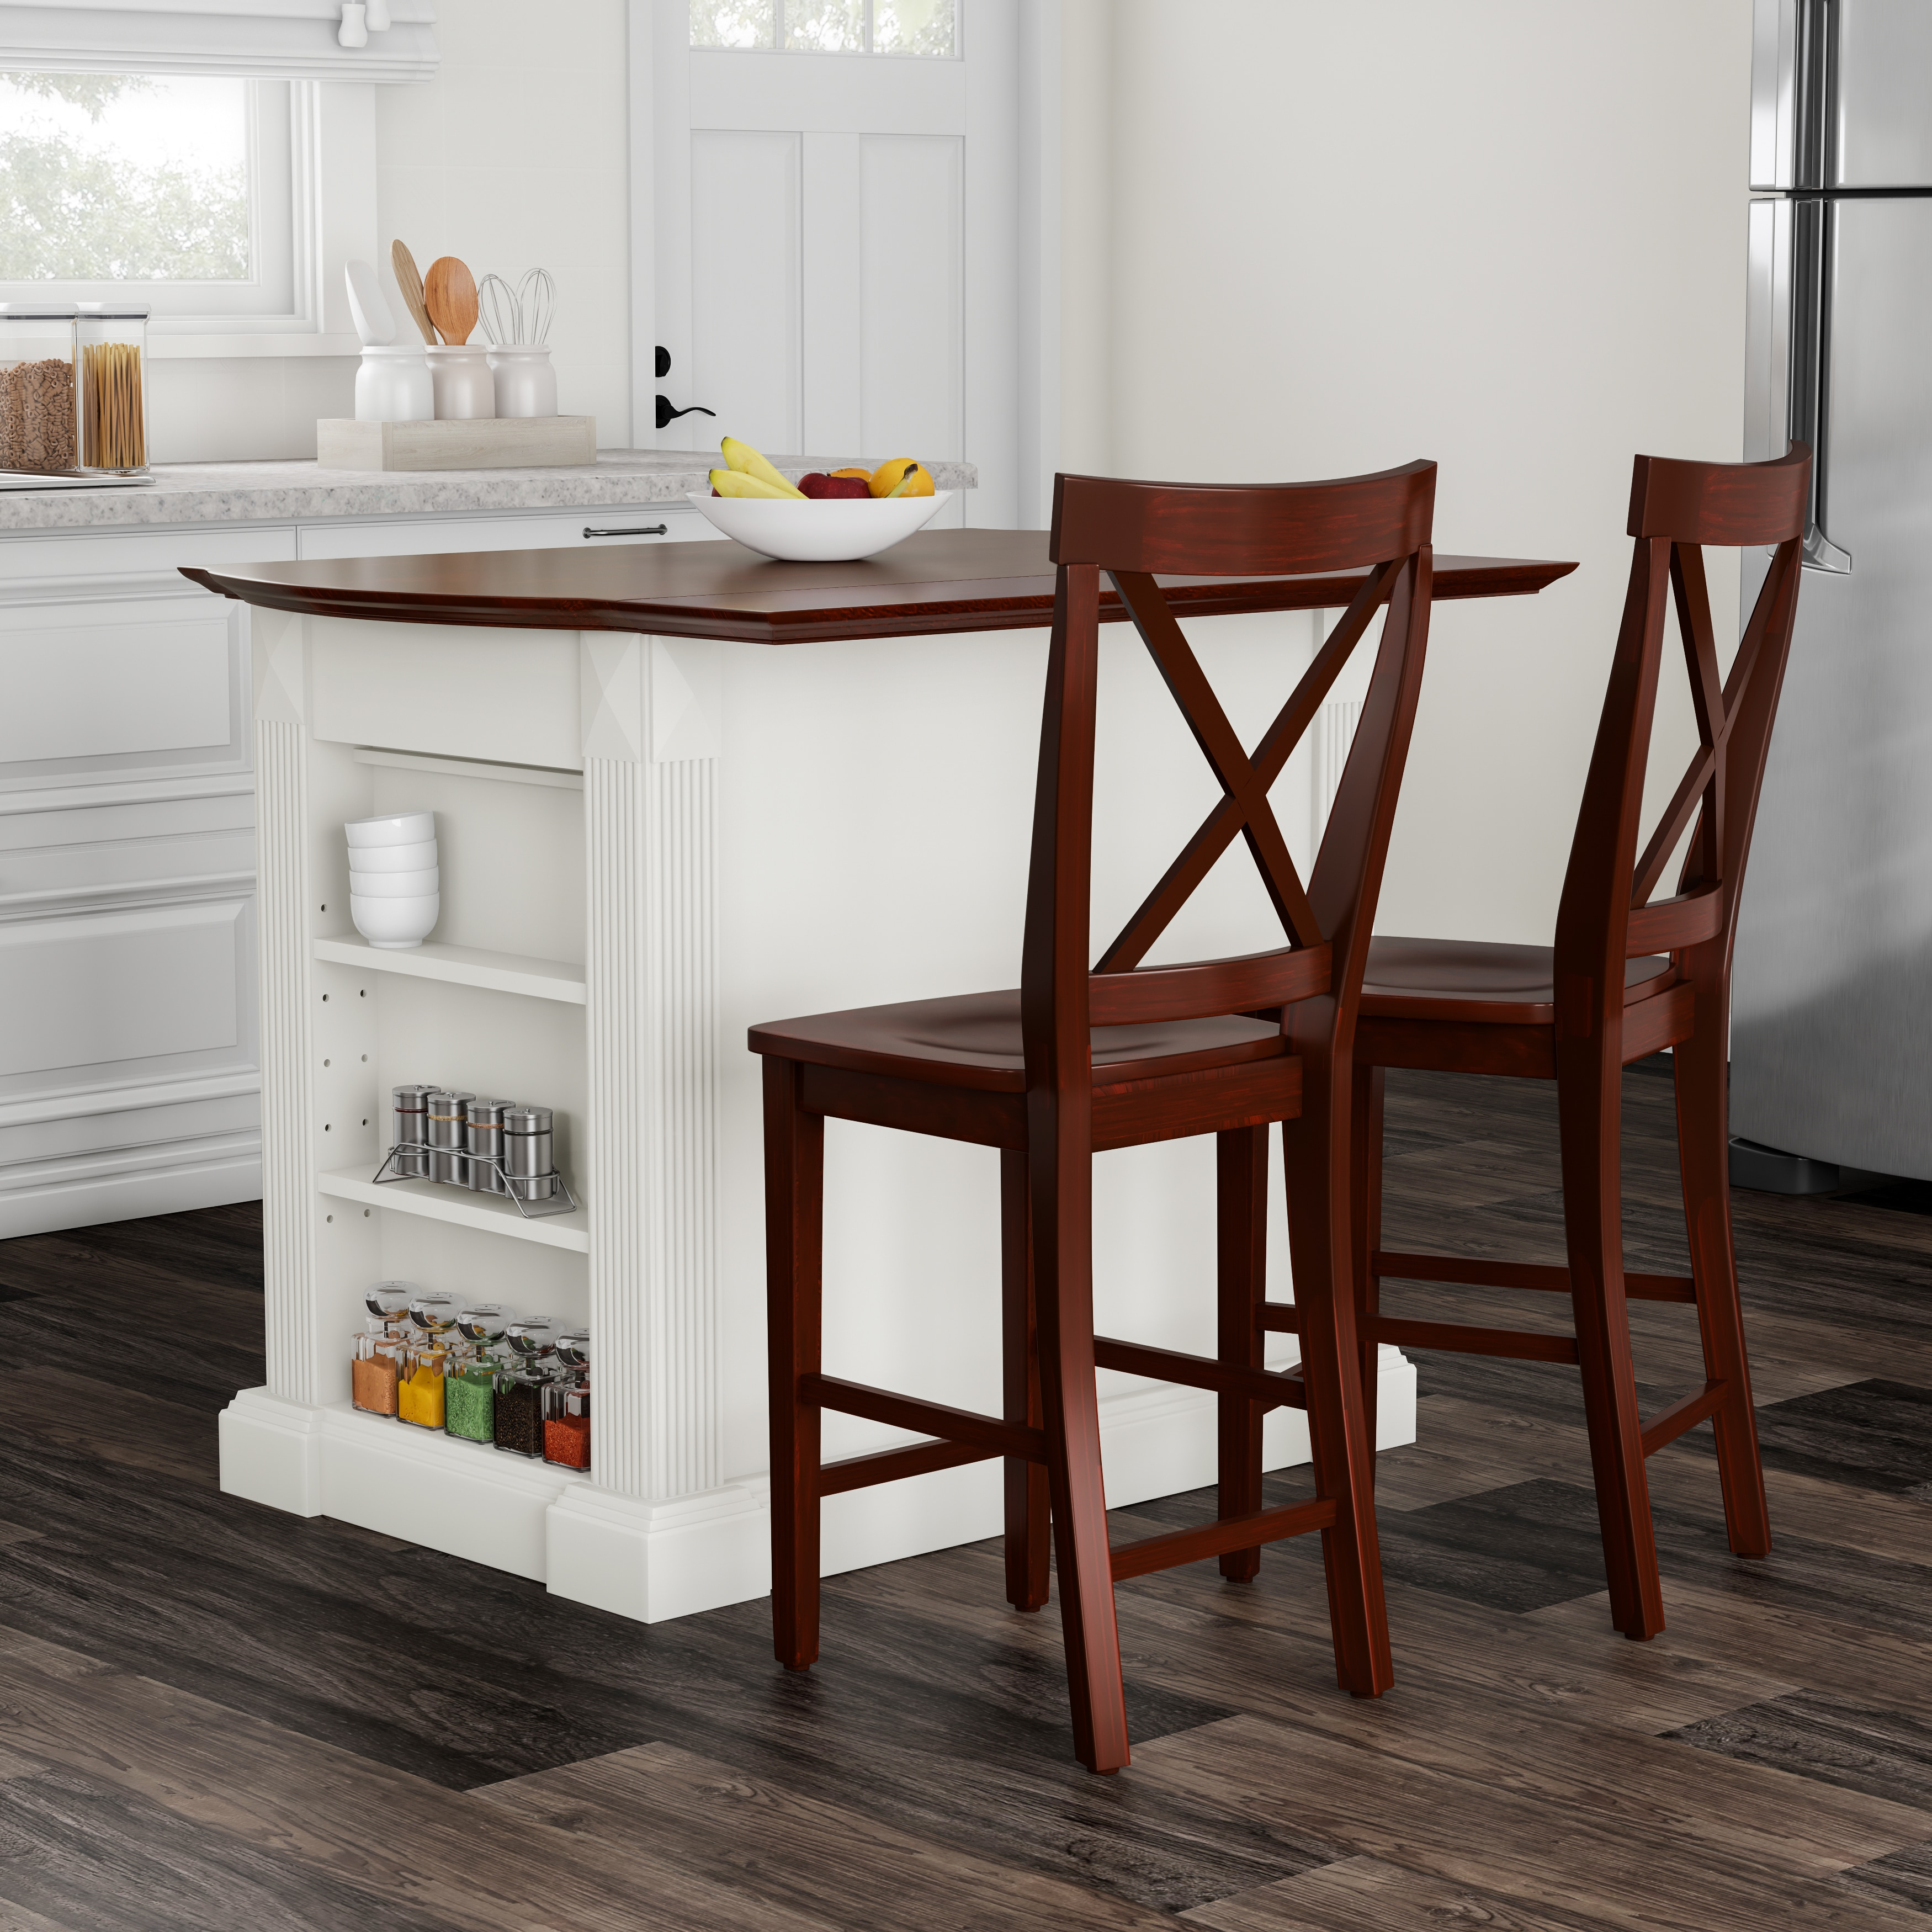 Copper Grove Sumpter Drop Leaf Breakfast Bar Top Kitchen Island in White  Finish with 24\